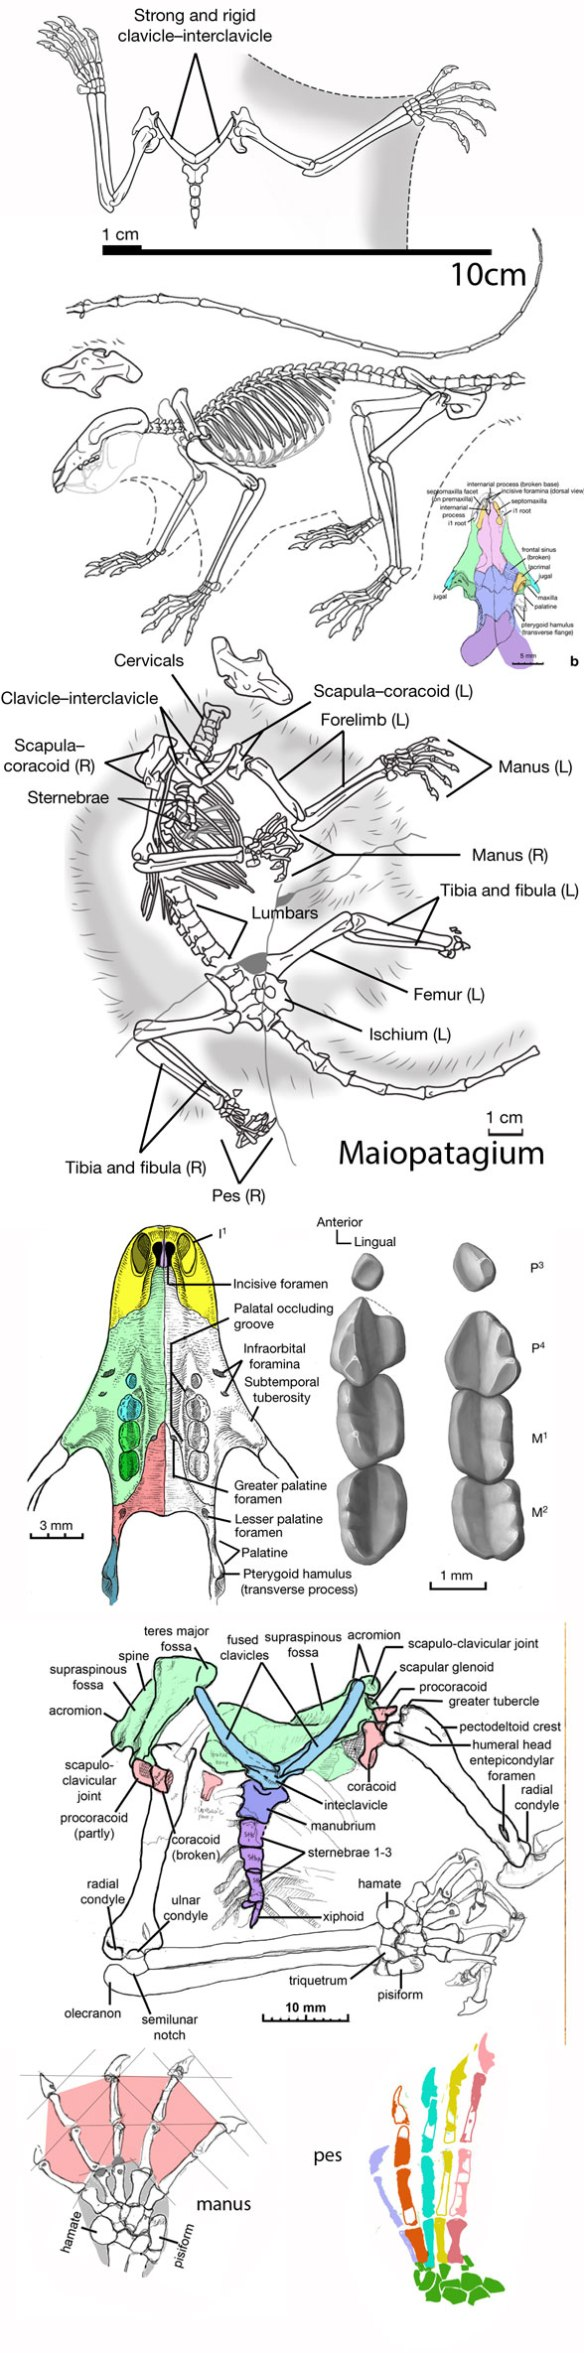 Figure 2. Maiopatagium imagery from Meng et al. 2017, plus reconstruction of the extended manus and pes and some bones colorized.